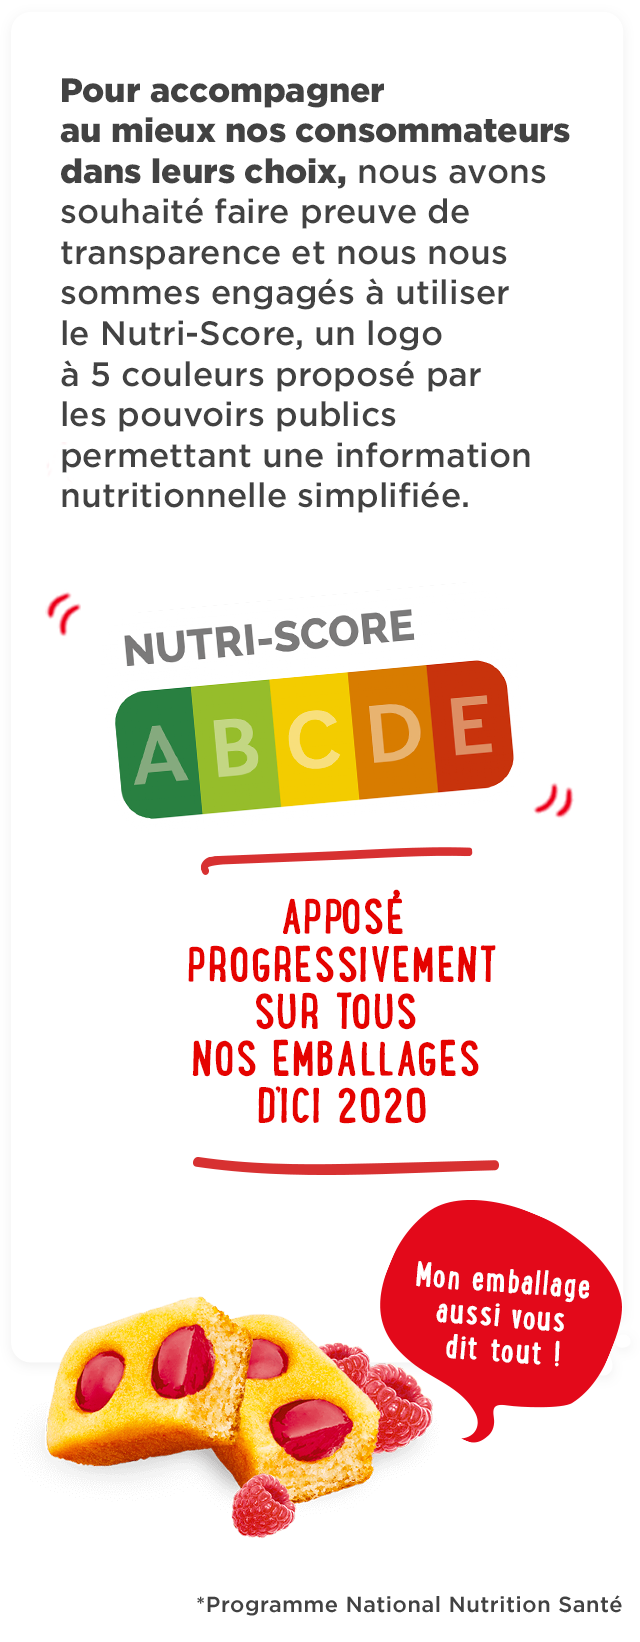 qualité nutritionnelle - mobile